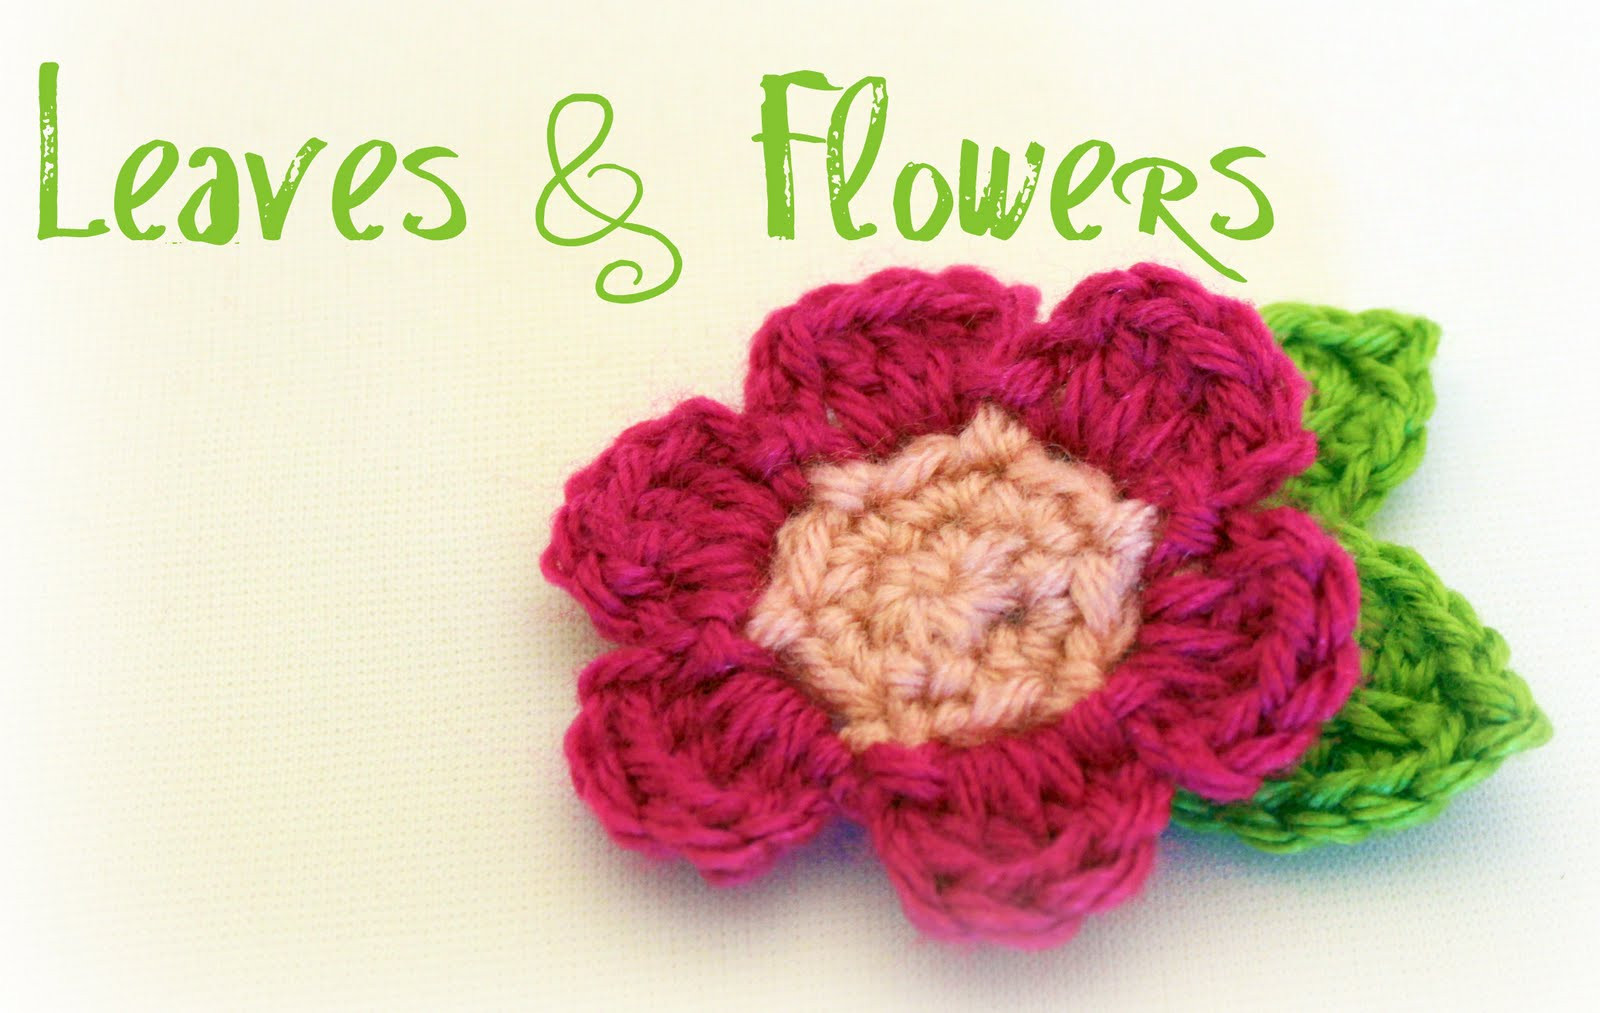 Free Crochet Flower Patterns Luxury Crochet Pattern Mamacheemamachee Of Amazing 42 Images Free Crochet Flower Patterns